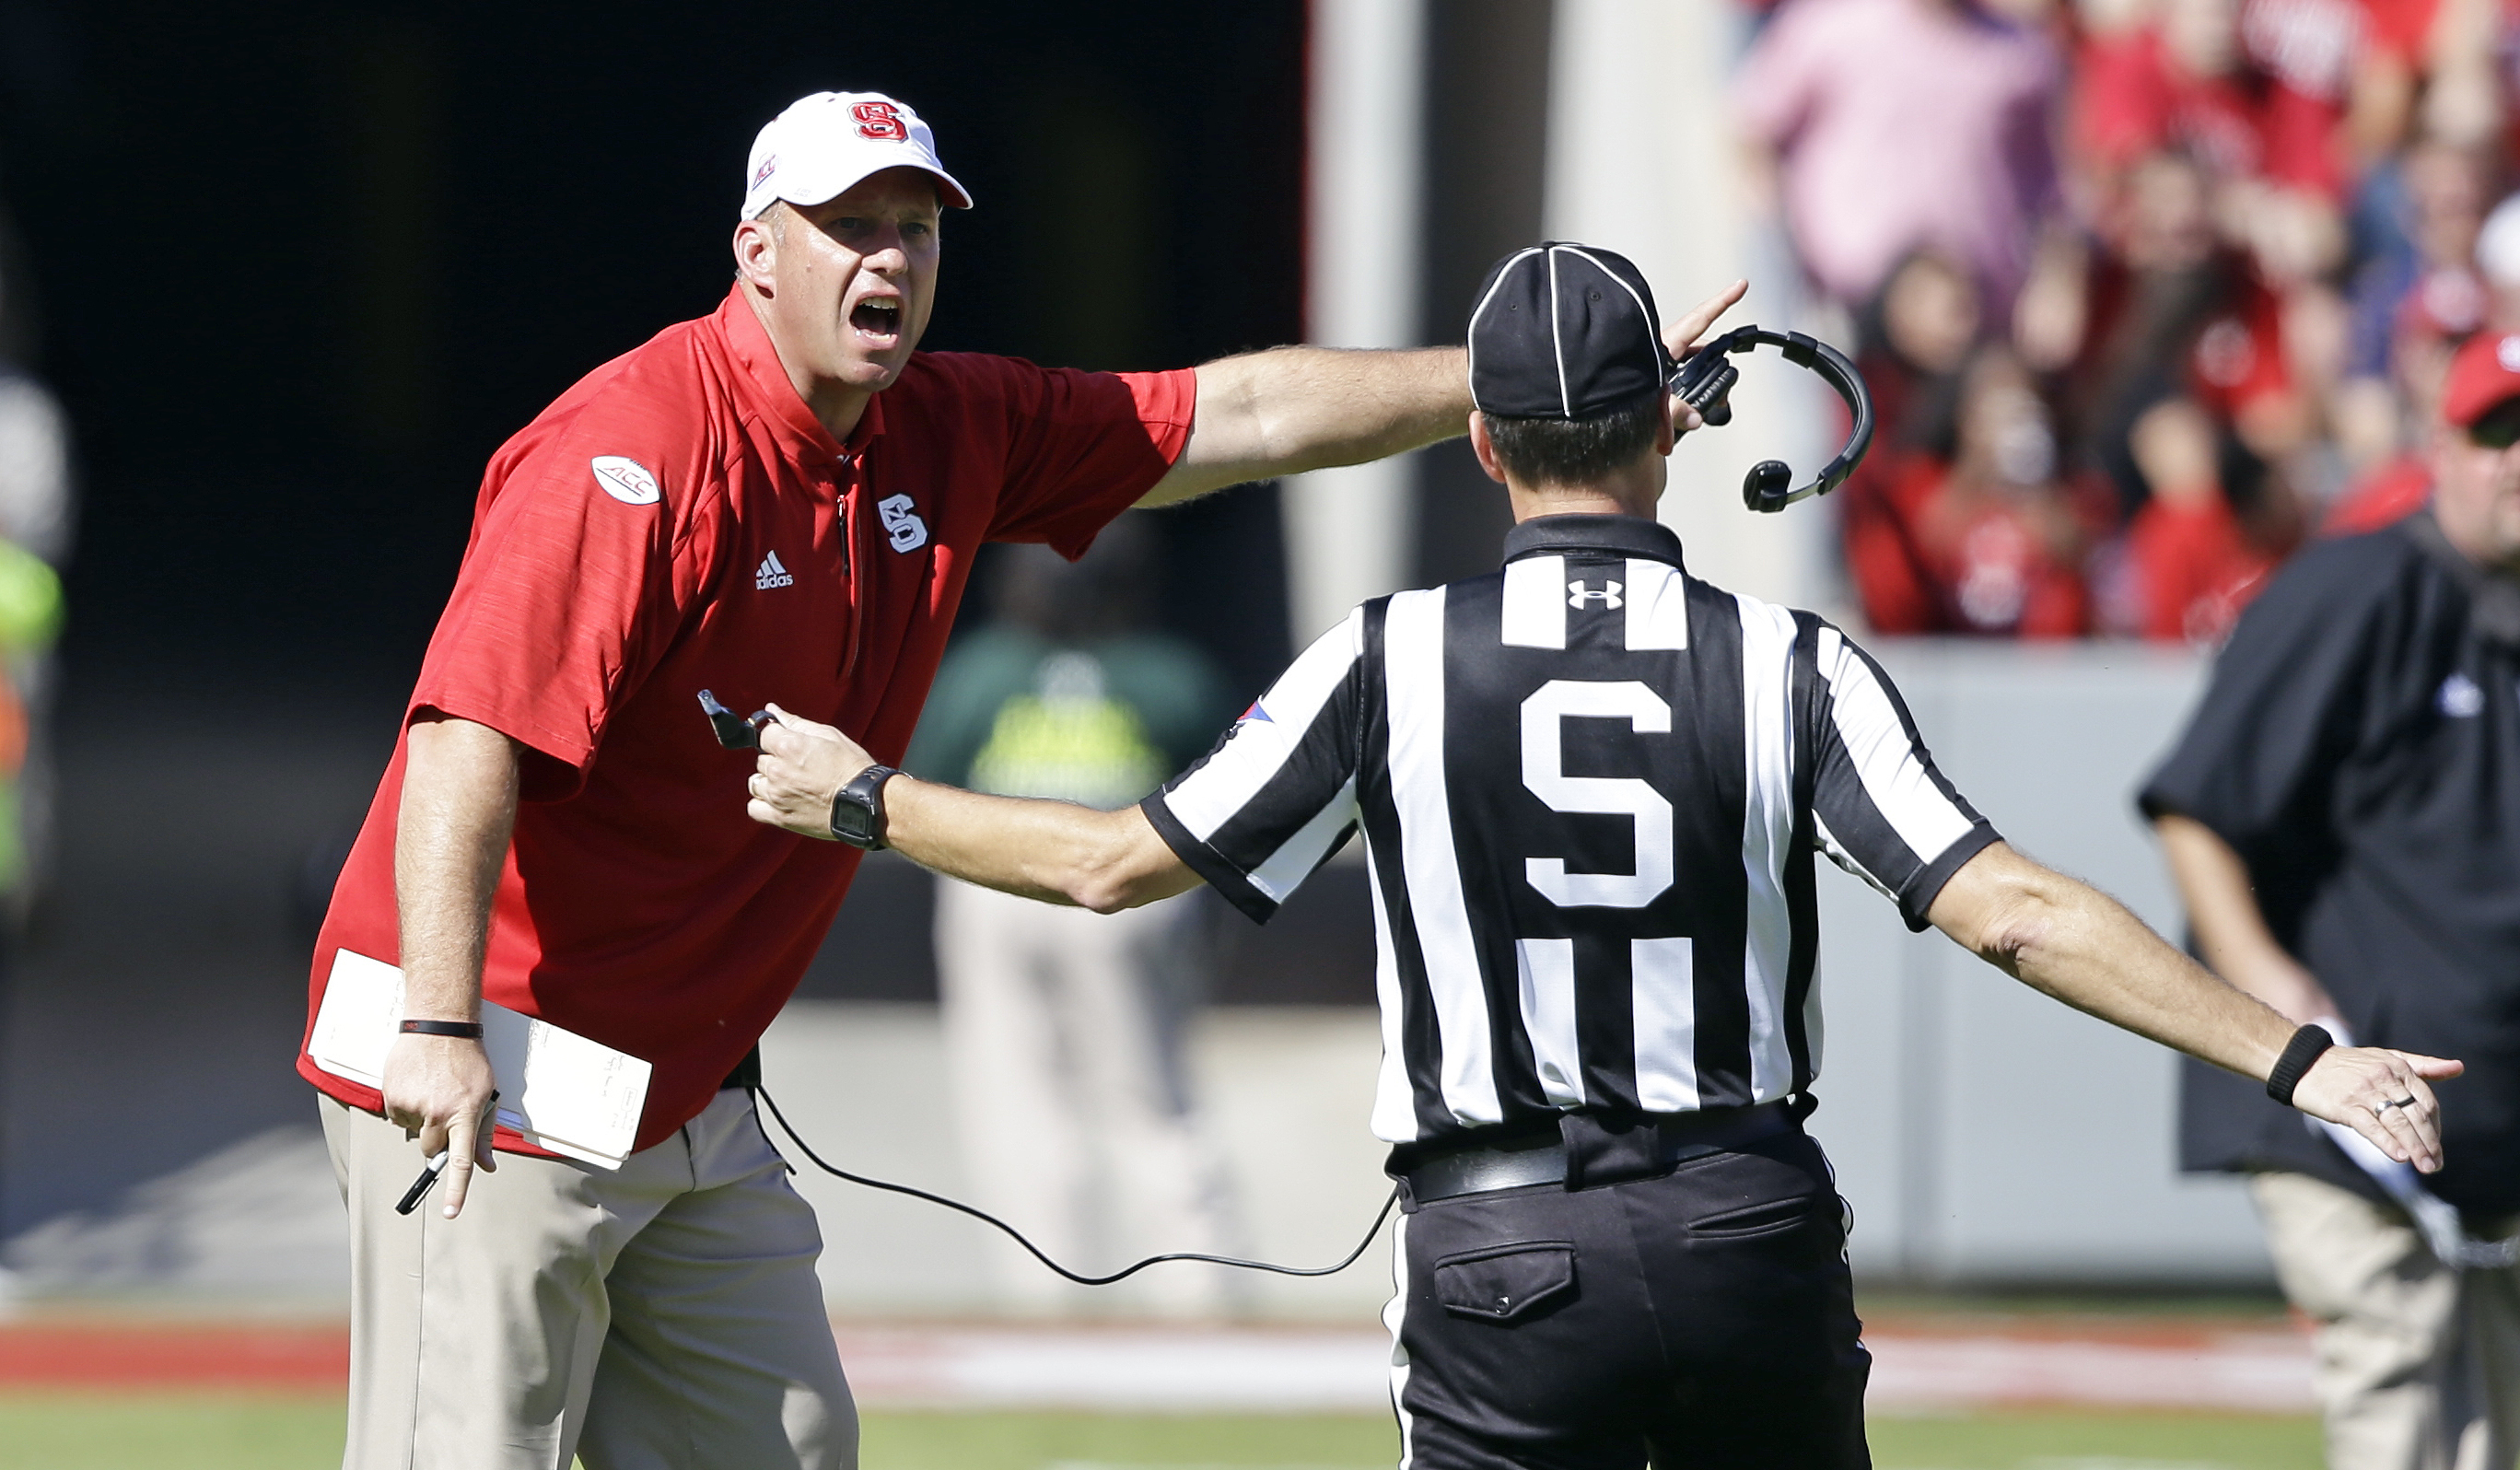 North Carolina State head coach Dave Doeren yells at an official during the first half of an NCAA college football game against Boston College in Raleigh, N.C., Saturday, Oct. 29, 2016. (AP Photo/Gerry Broome)